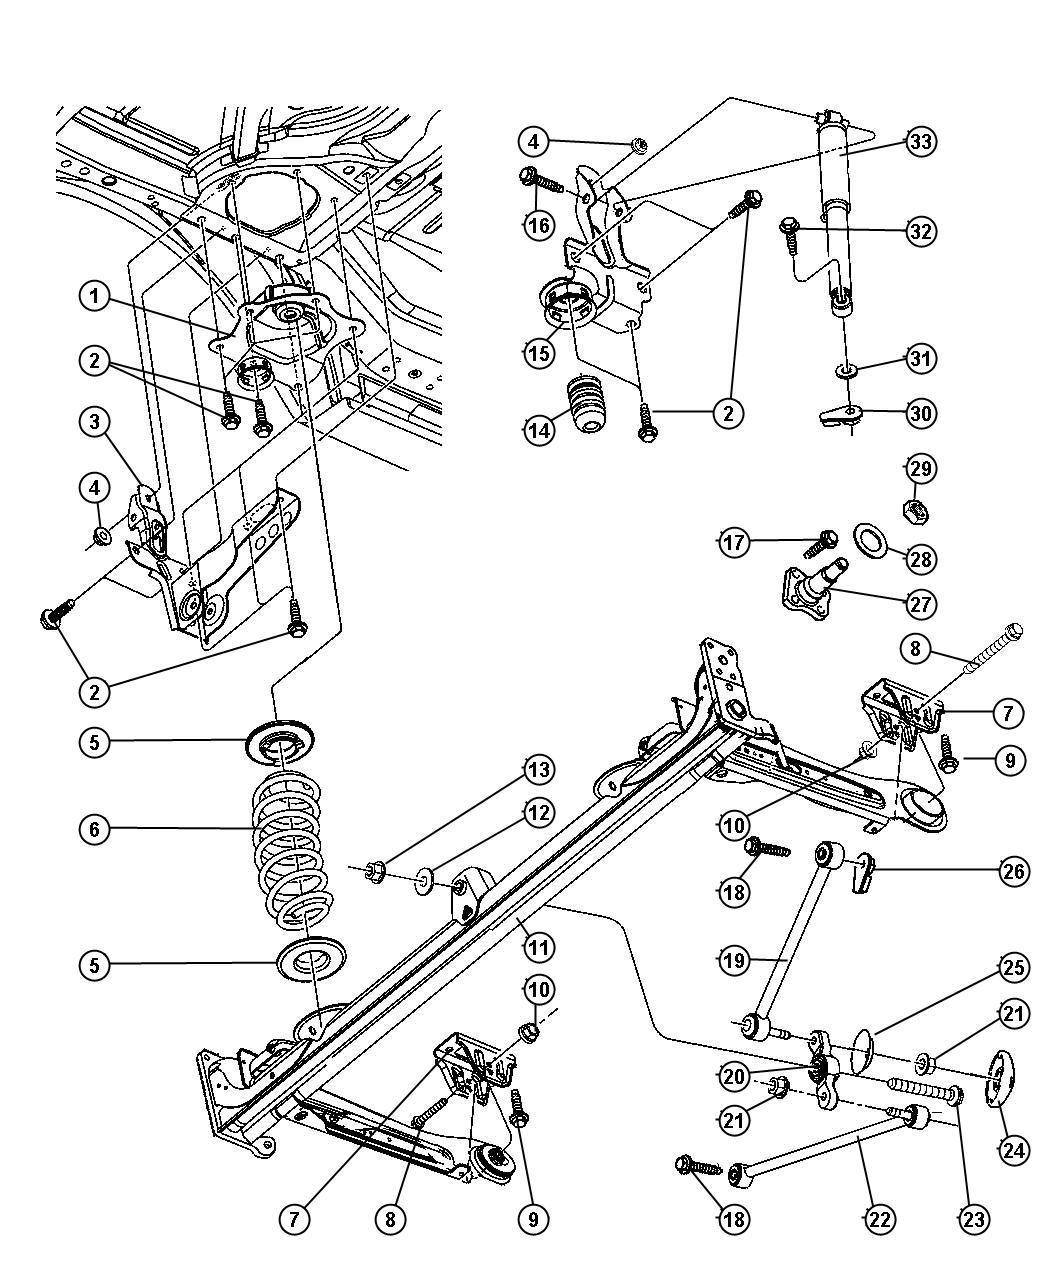 Chrysler Concorde 3 5 2003 Specs And Images also 45 2005 Jeep Liberty Parts Diagram further Chrysler 300m Thermostat Location additionally Chrysler Sebring 2 4 2004 Specs And Images also RepairGuideContent. on chrysler concorde suspension diagram